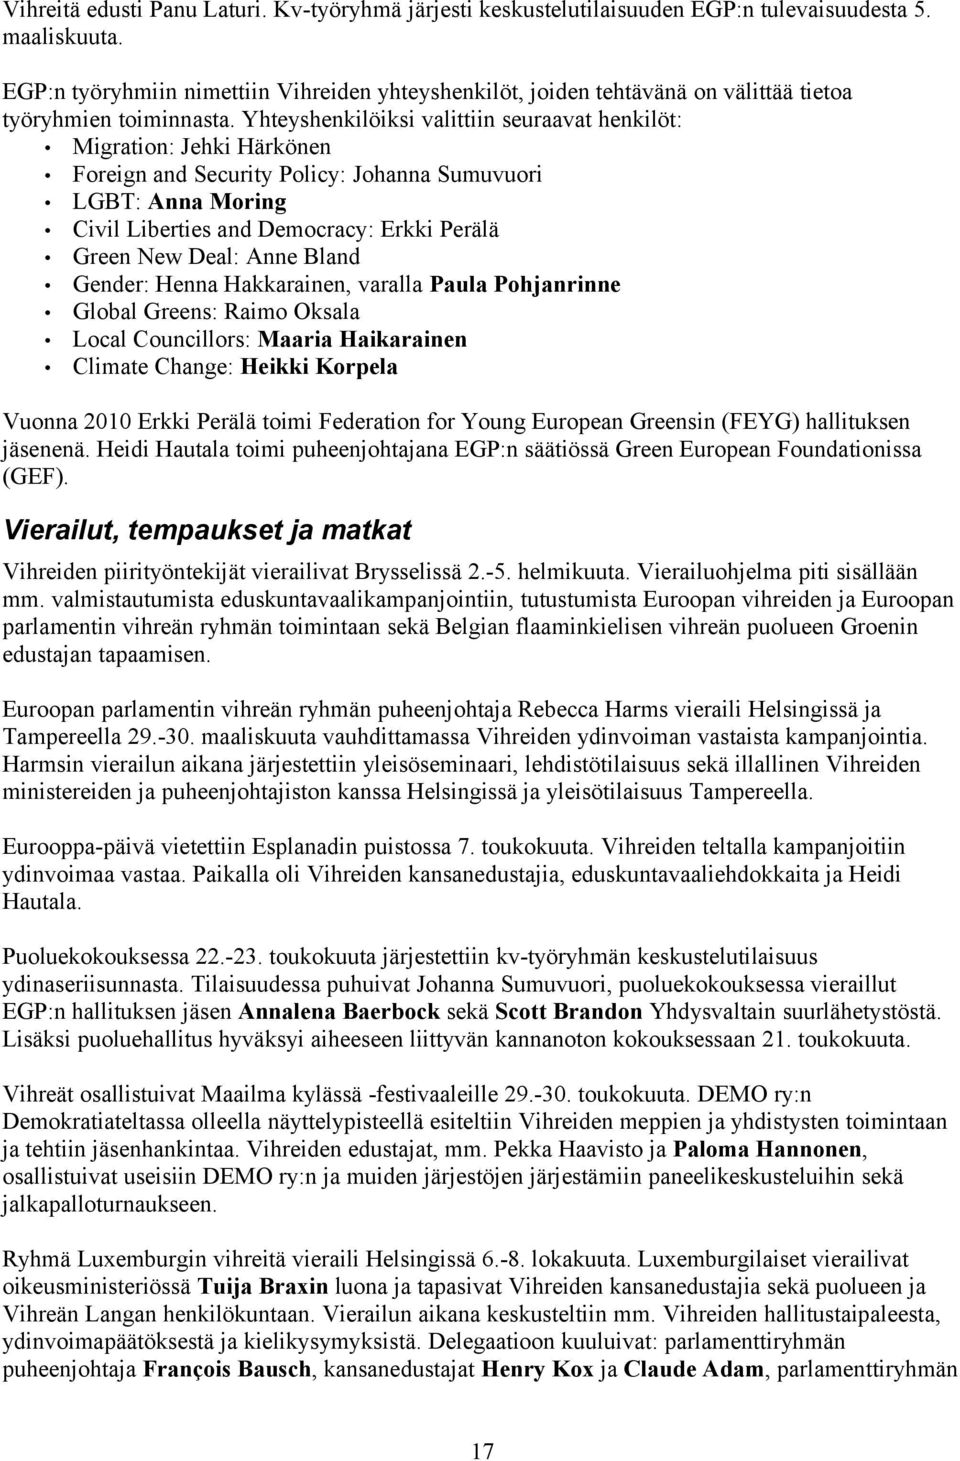 Yhteyshenkilöiksi valittiin seuraavat henkilöt: Migration: Jehki Härkönen Foreign and Security Policy: Johanna Sumuvuori LGBT: Anna Moring Civil Liberties and Democracy: Erkki Perälä Green New Deal: